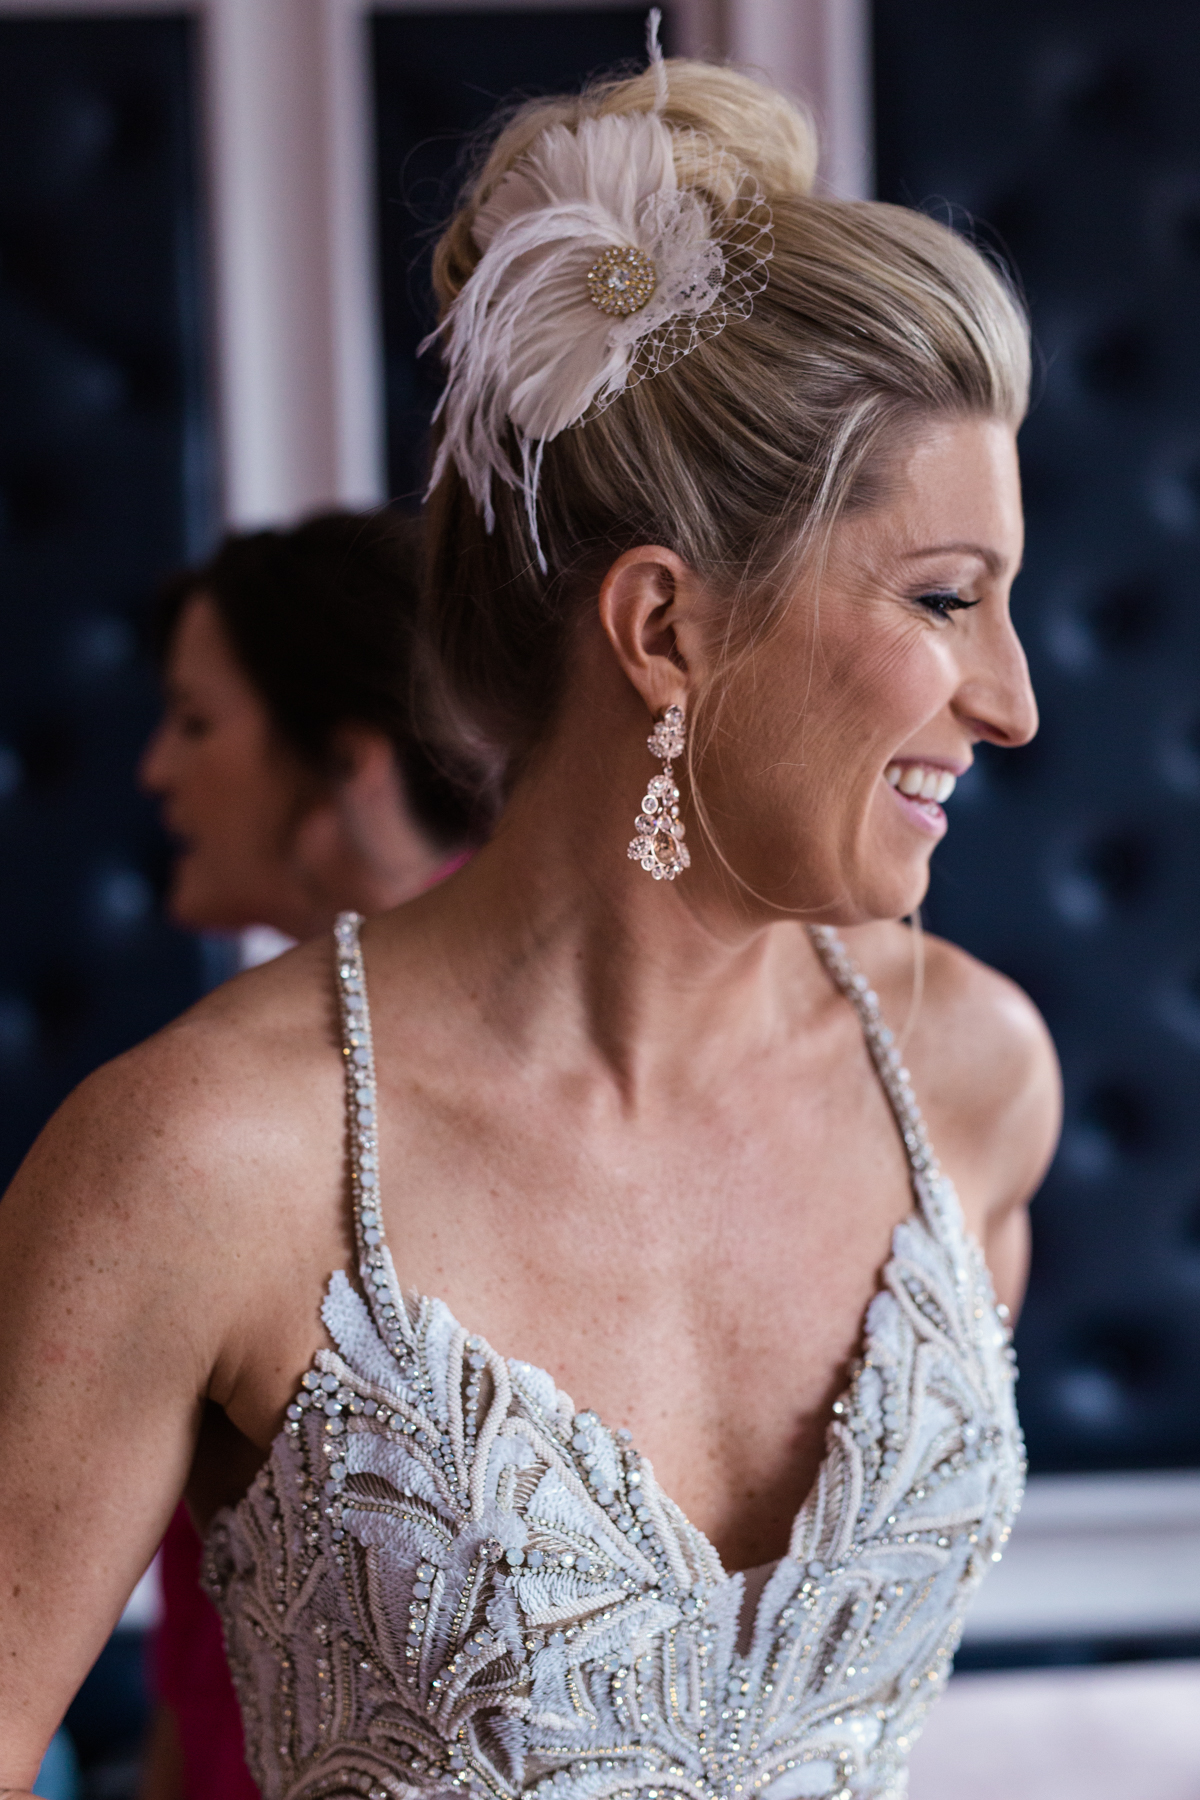 City-Winery-Chicago-wedding-by-Emma-Mullins-Photography-7